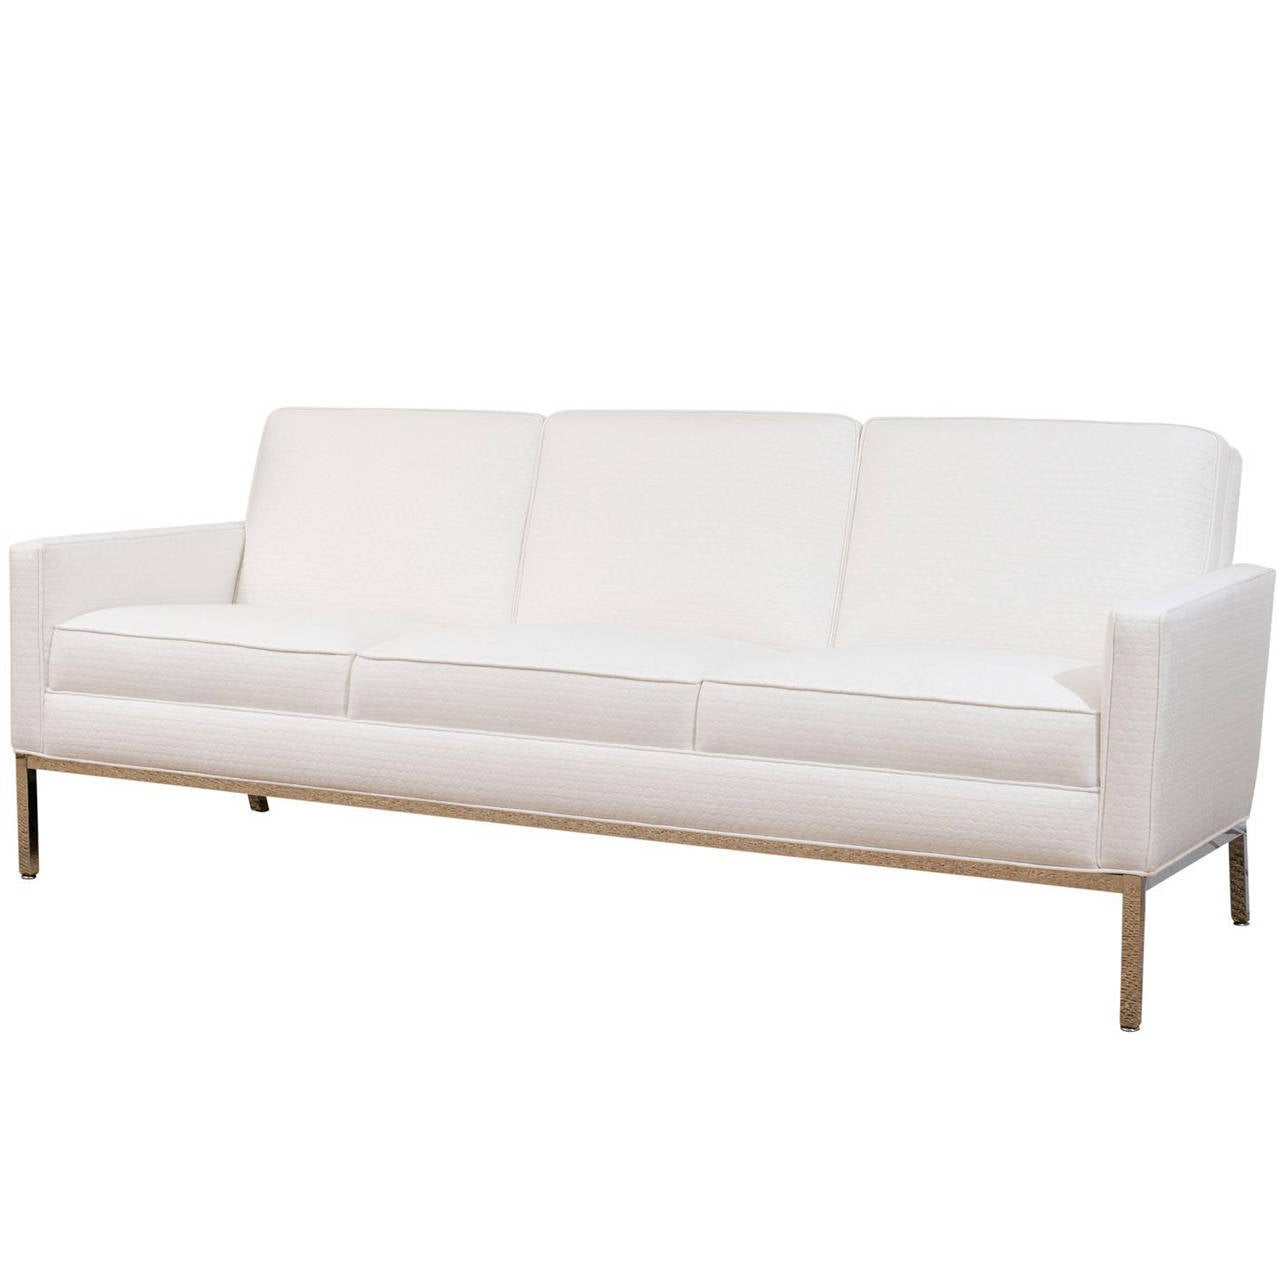 Sofa Set Cleaning: Clean-Lined Sofa At 1stdibs